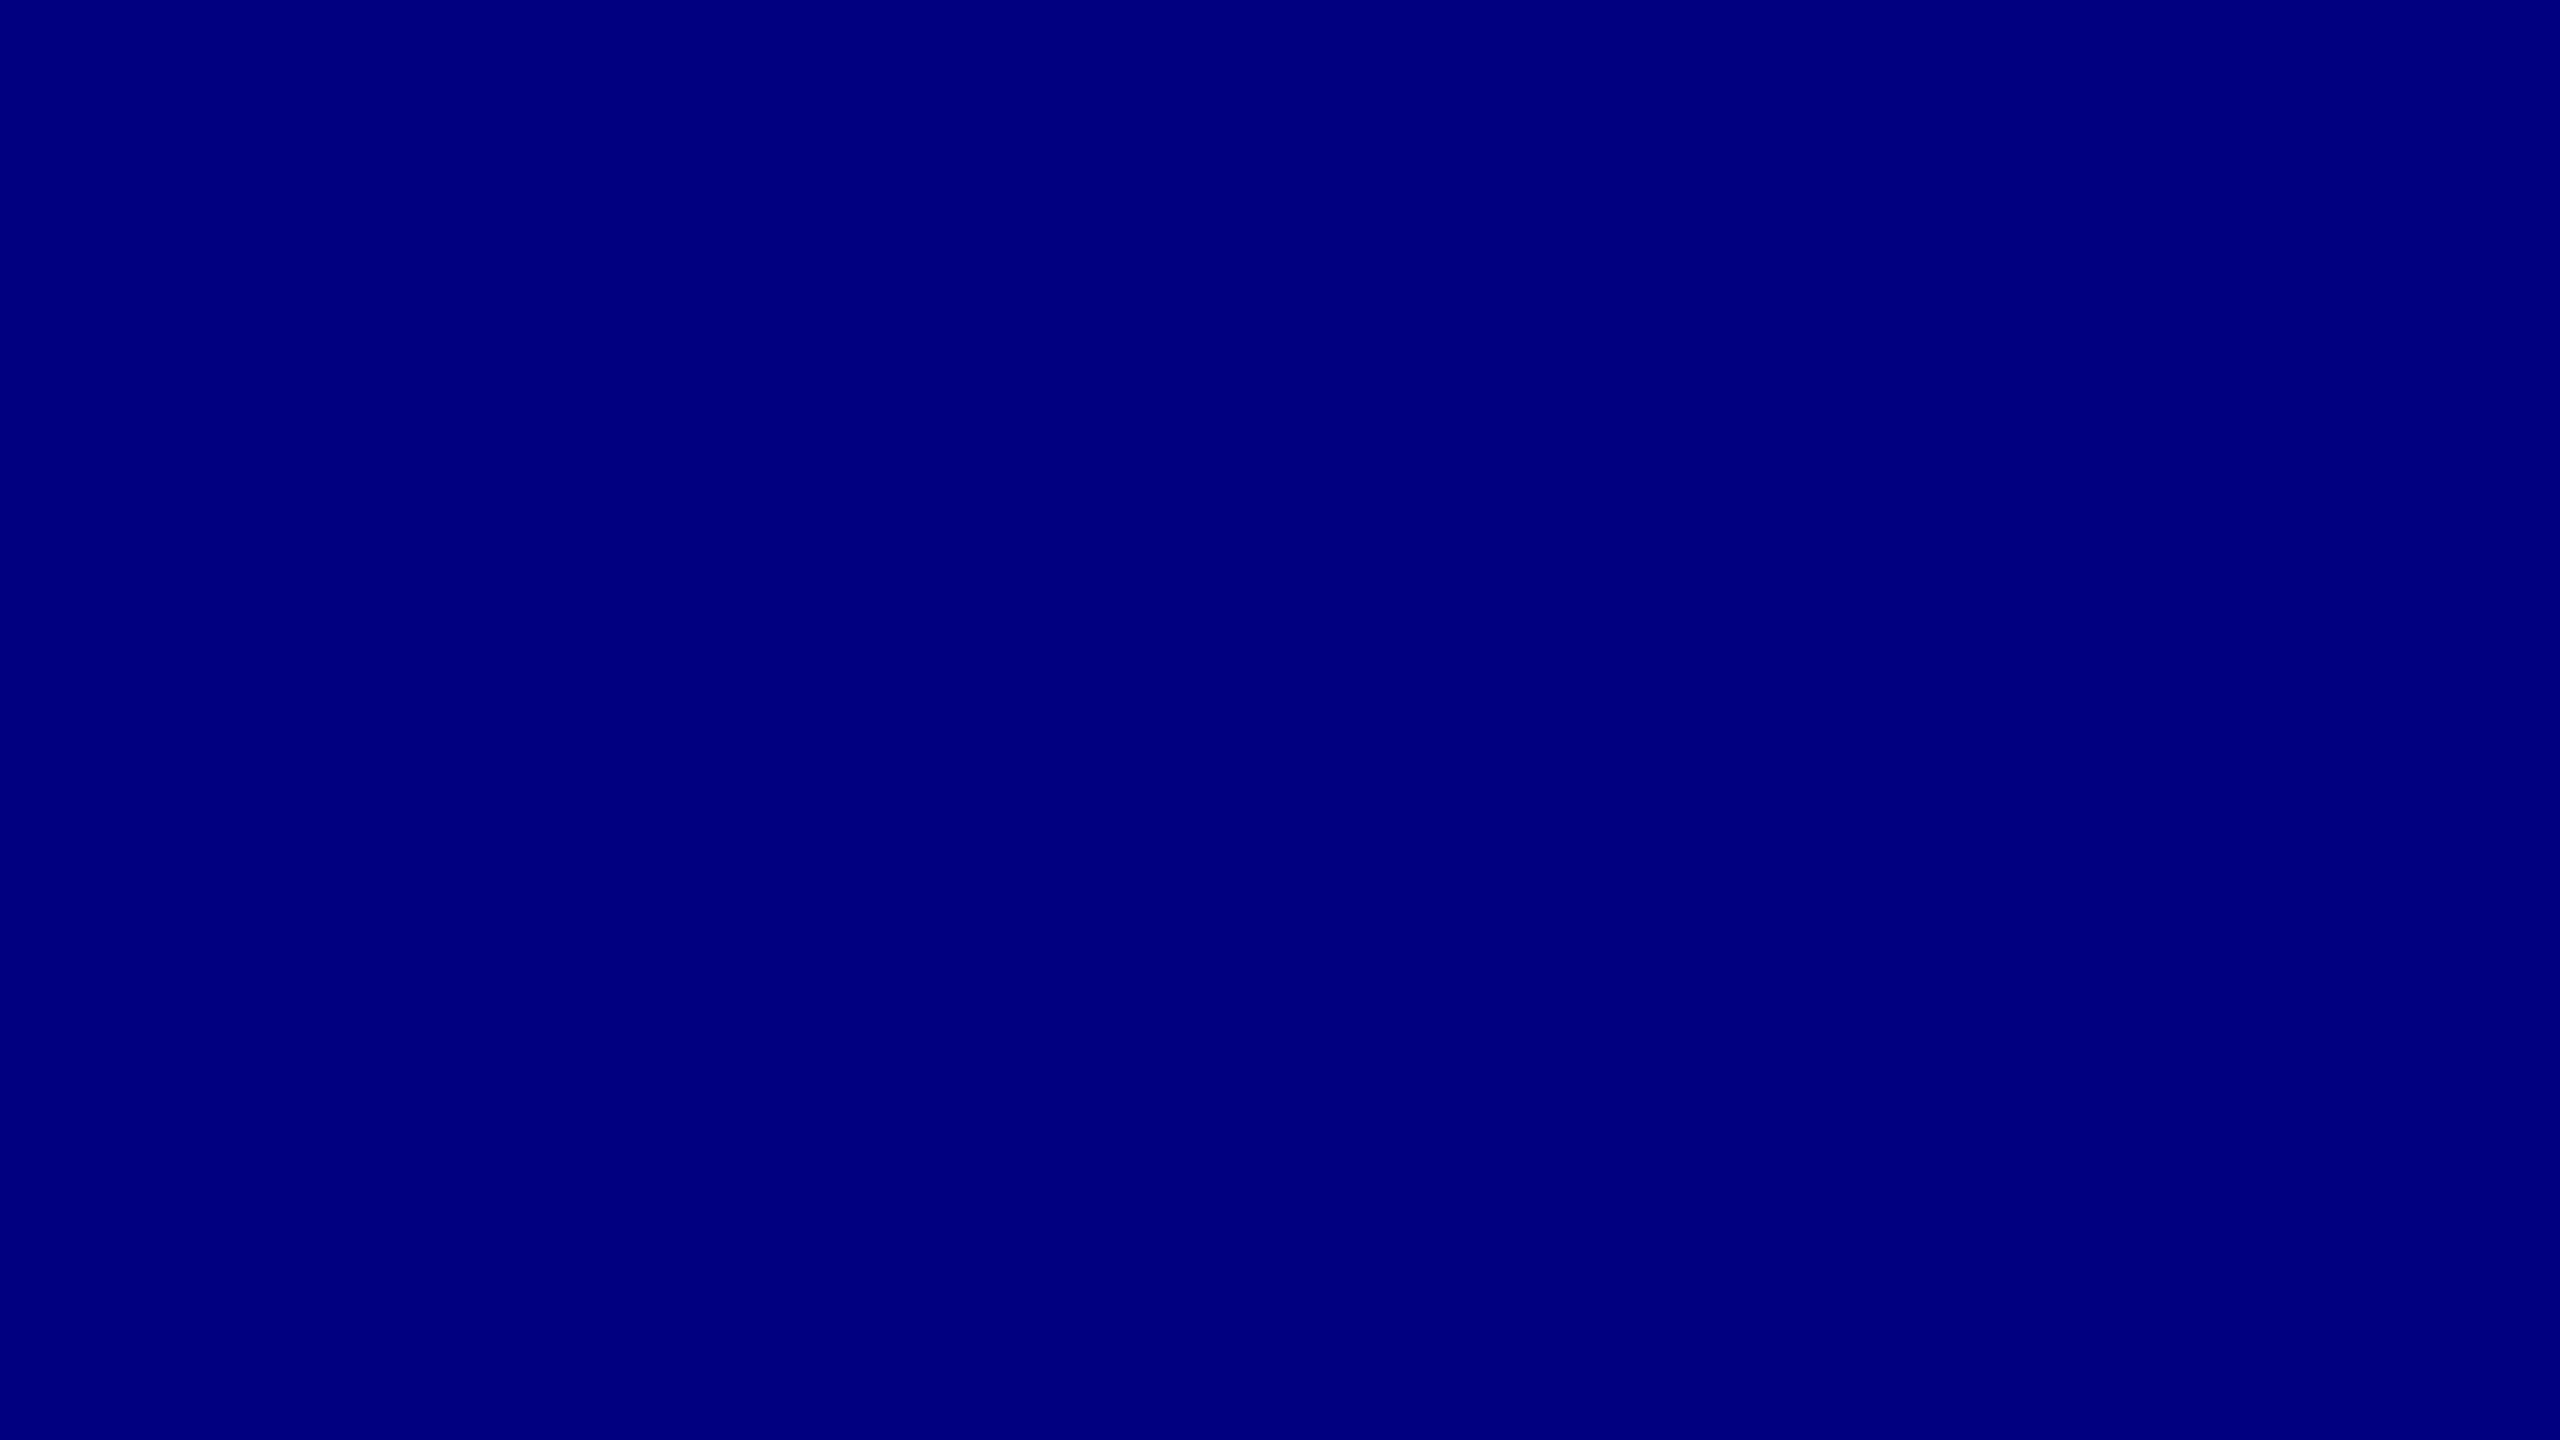 2560x1440 Navy Blue Solid Color Background